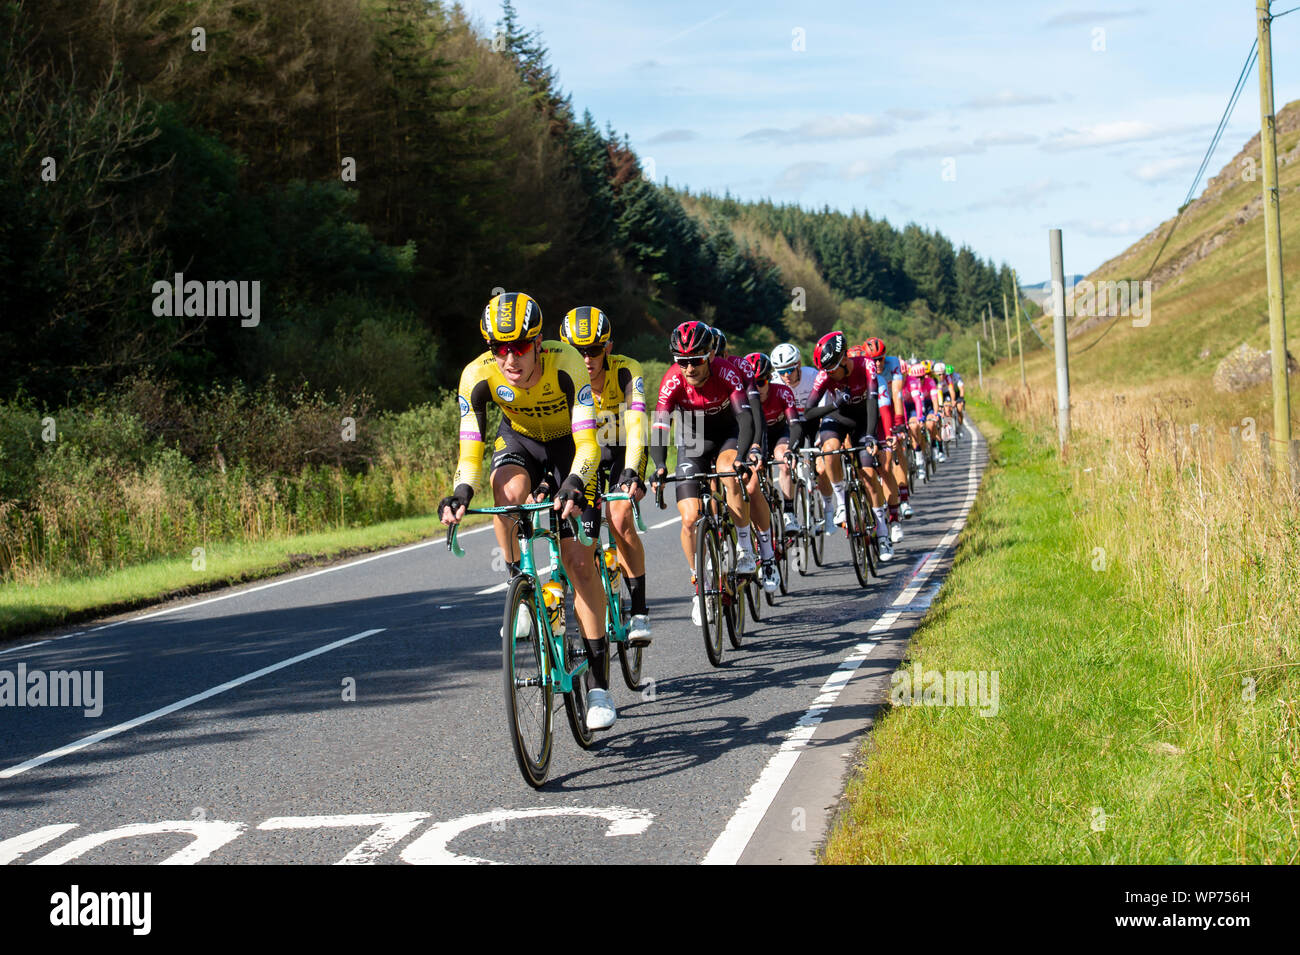 Dalmellington, Scotland, UK - September 7, 2019: Competitors in the OVO Energy Tour of Britain cycle race during stage one as they make their way through south Ayrshire towards the finish in Kirkcudbright, Dumfries and Galloway. Stock Photo